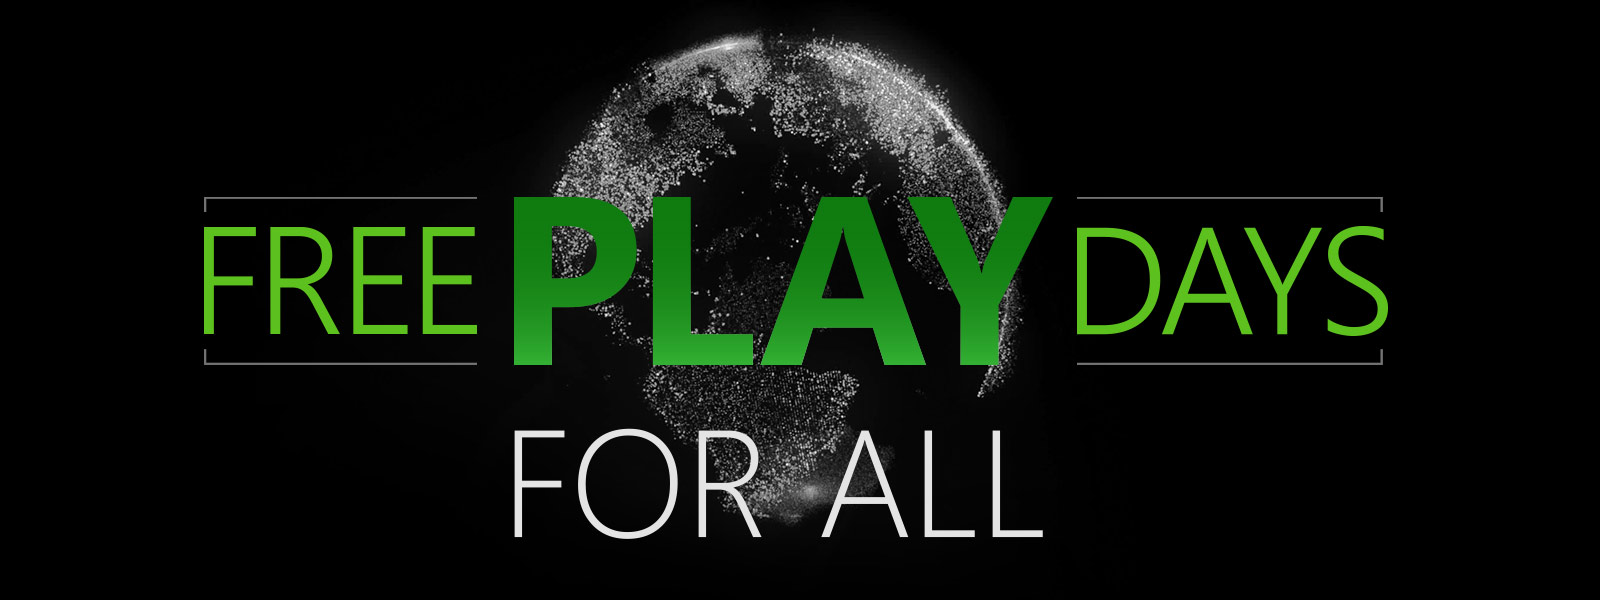 Free Play days logo with world behind the logo